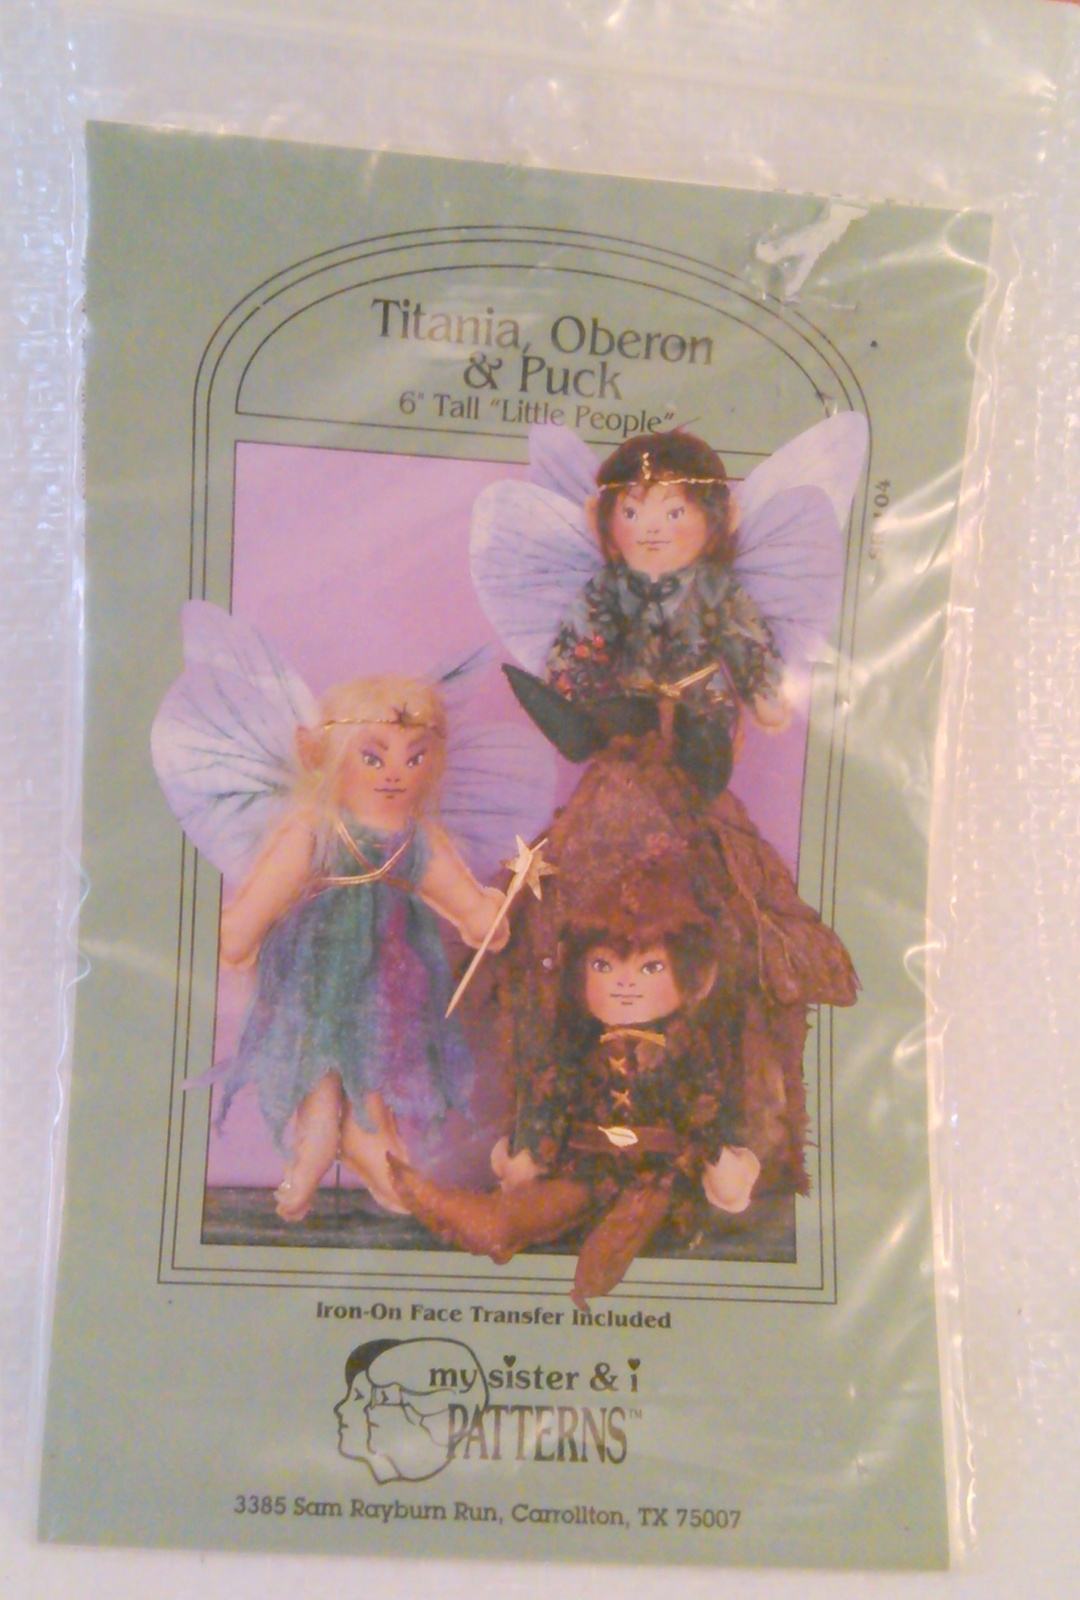 "Doll Pattern by My Sister & i 1993 #SR 104 Titania, Oberon and Puck 6"" tall ""Lit"